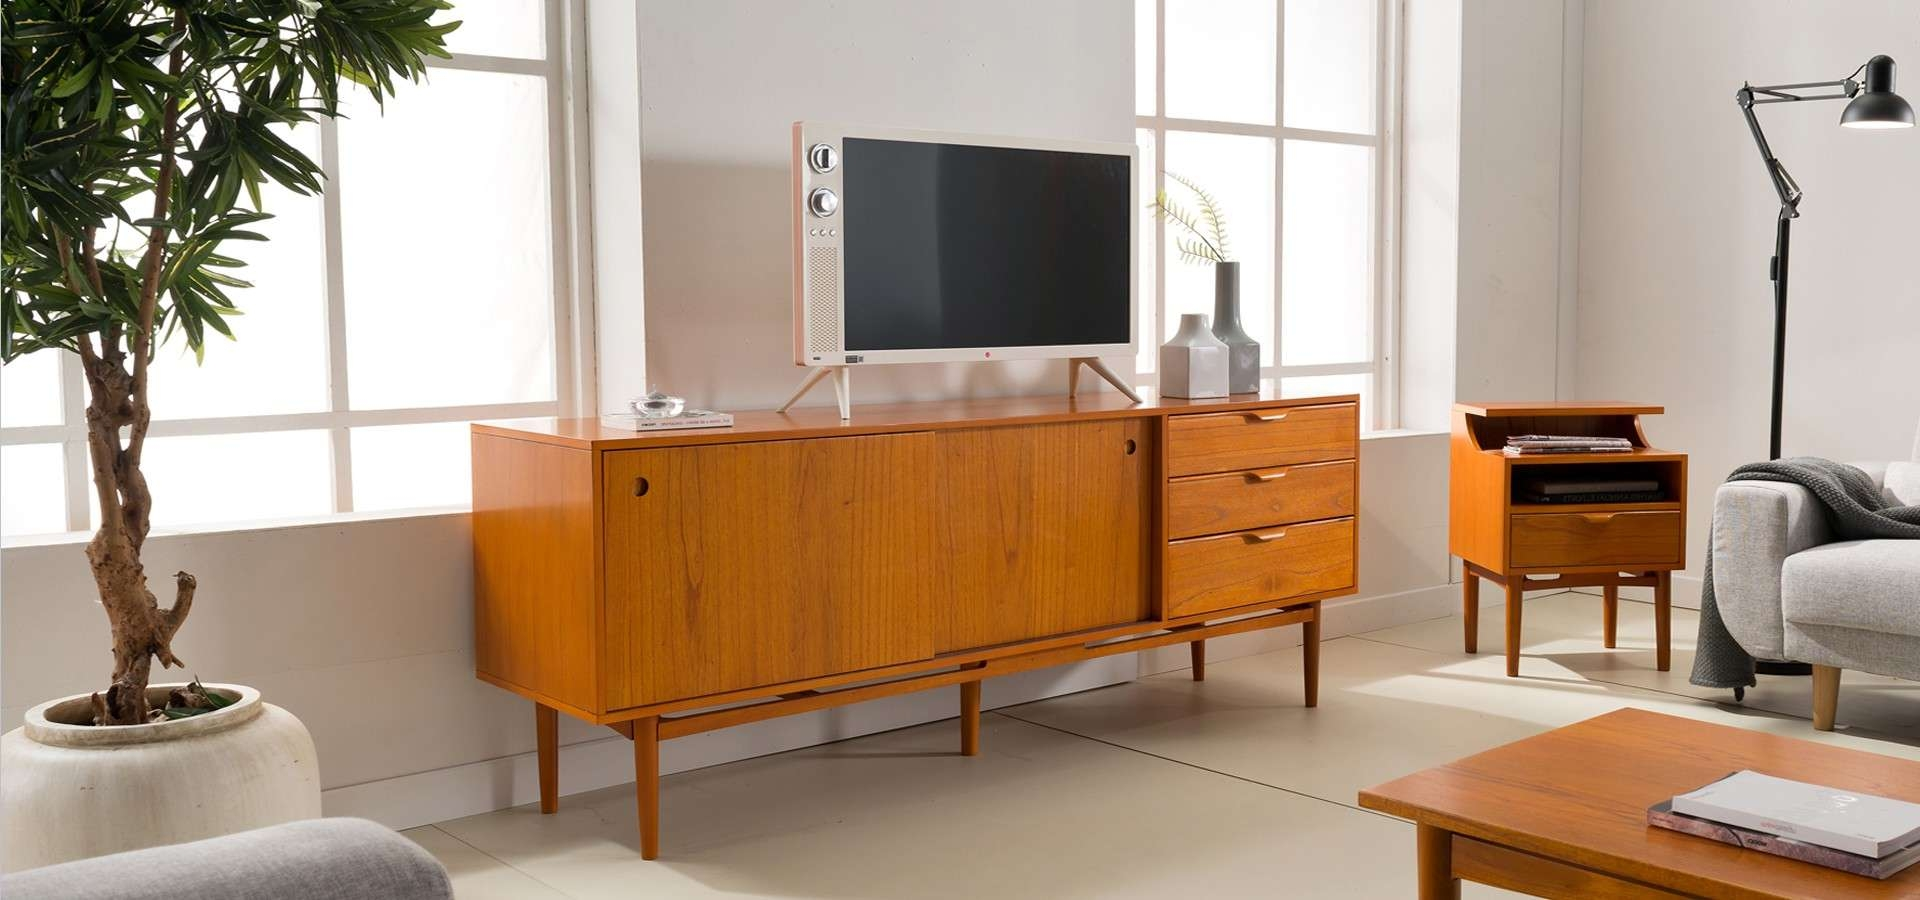 Vintage Sideboard (Tv Cabinet) | Furniture Shop Singapore Within Danish Retro Sideboards (Gallery 9 of 20)